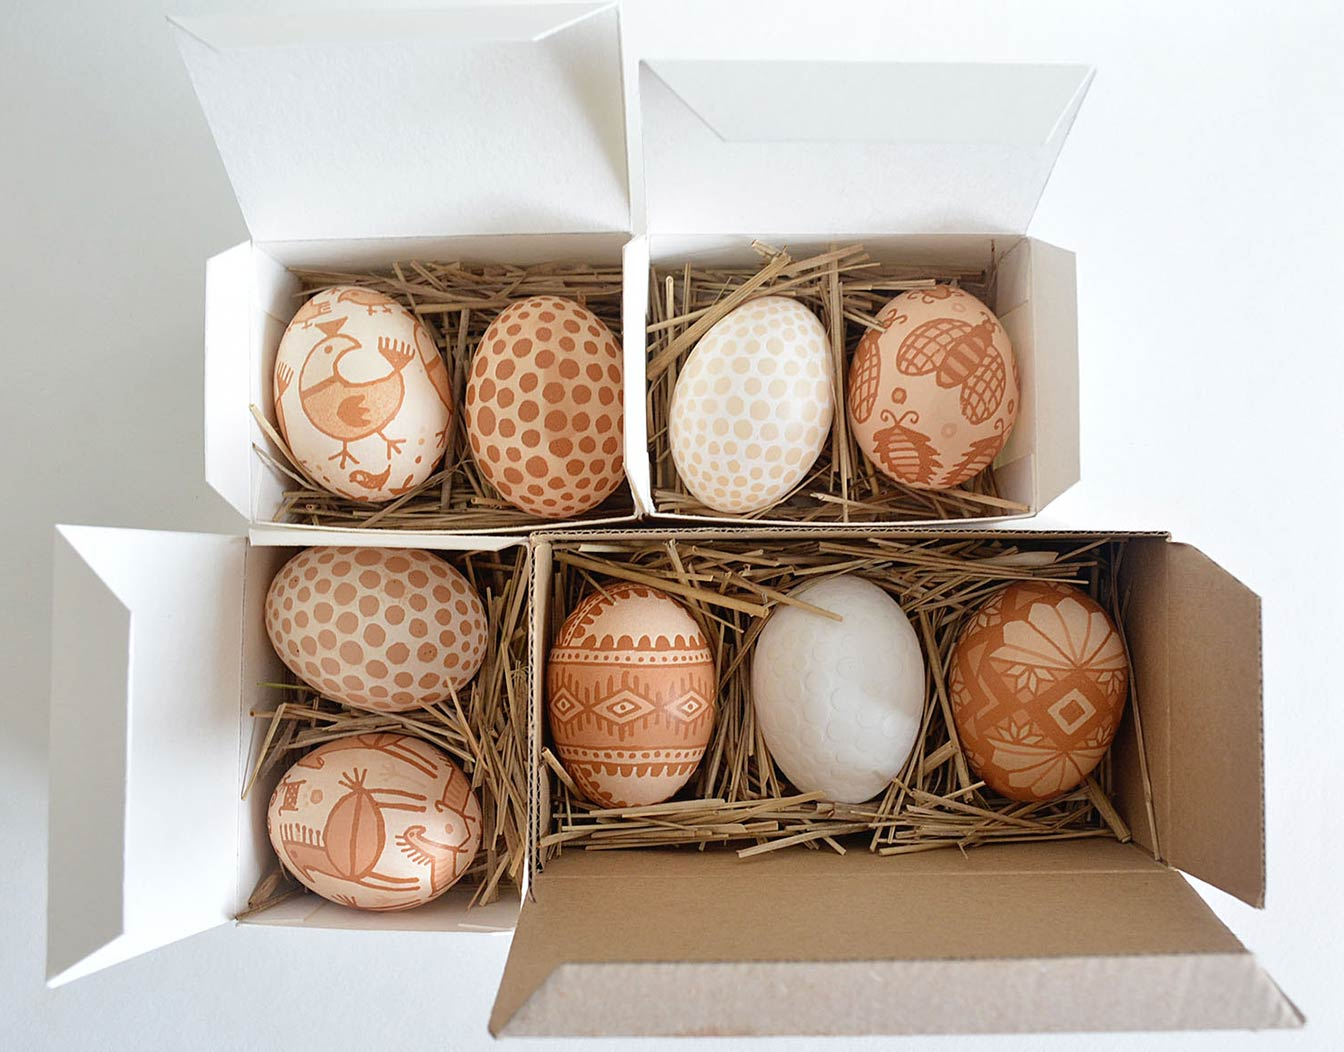 Hand painted Easter eggs in packaging